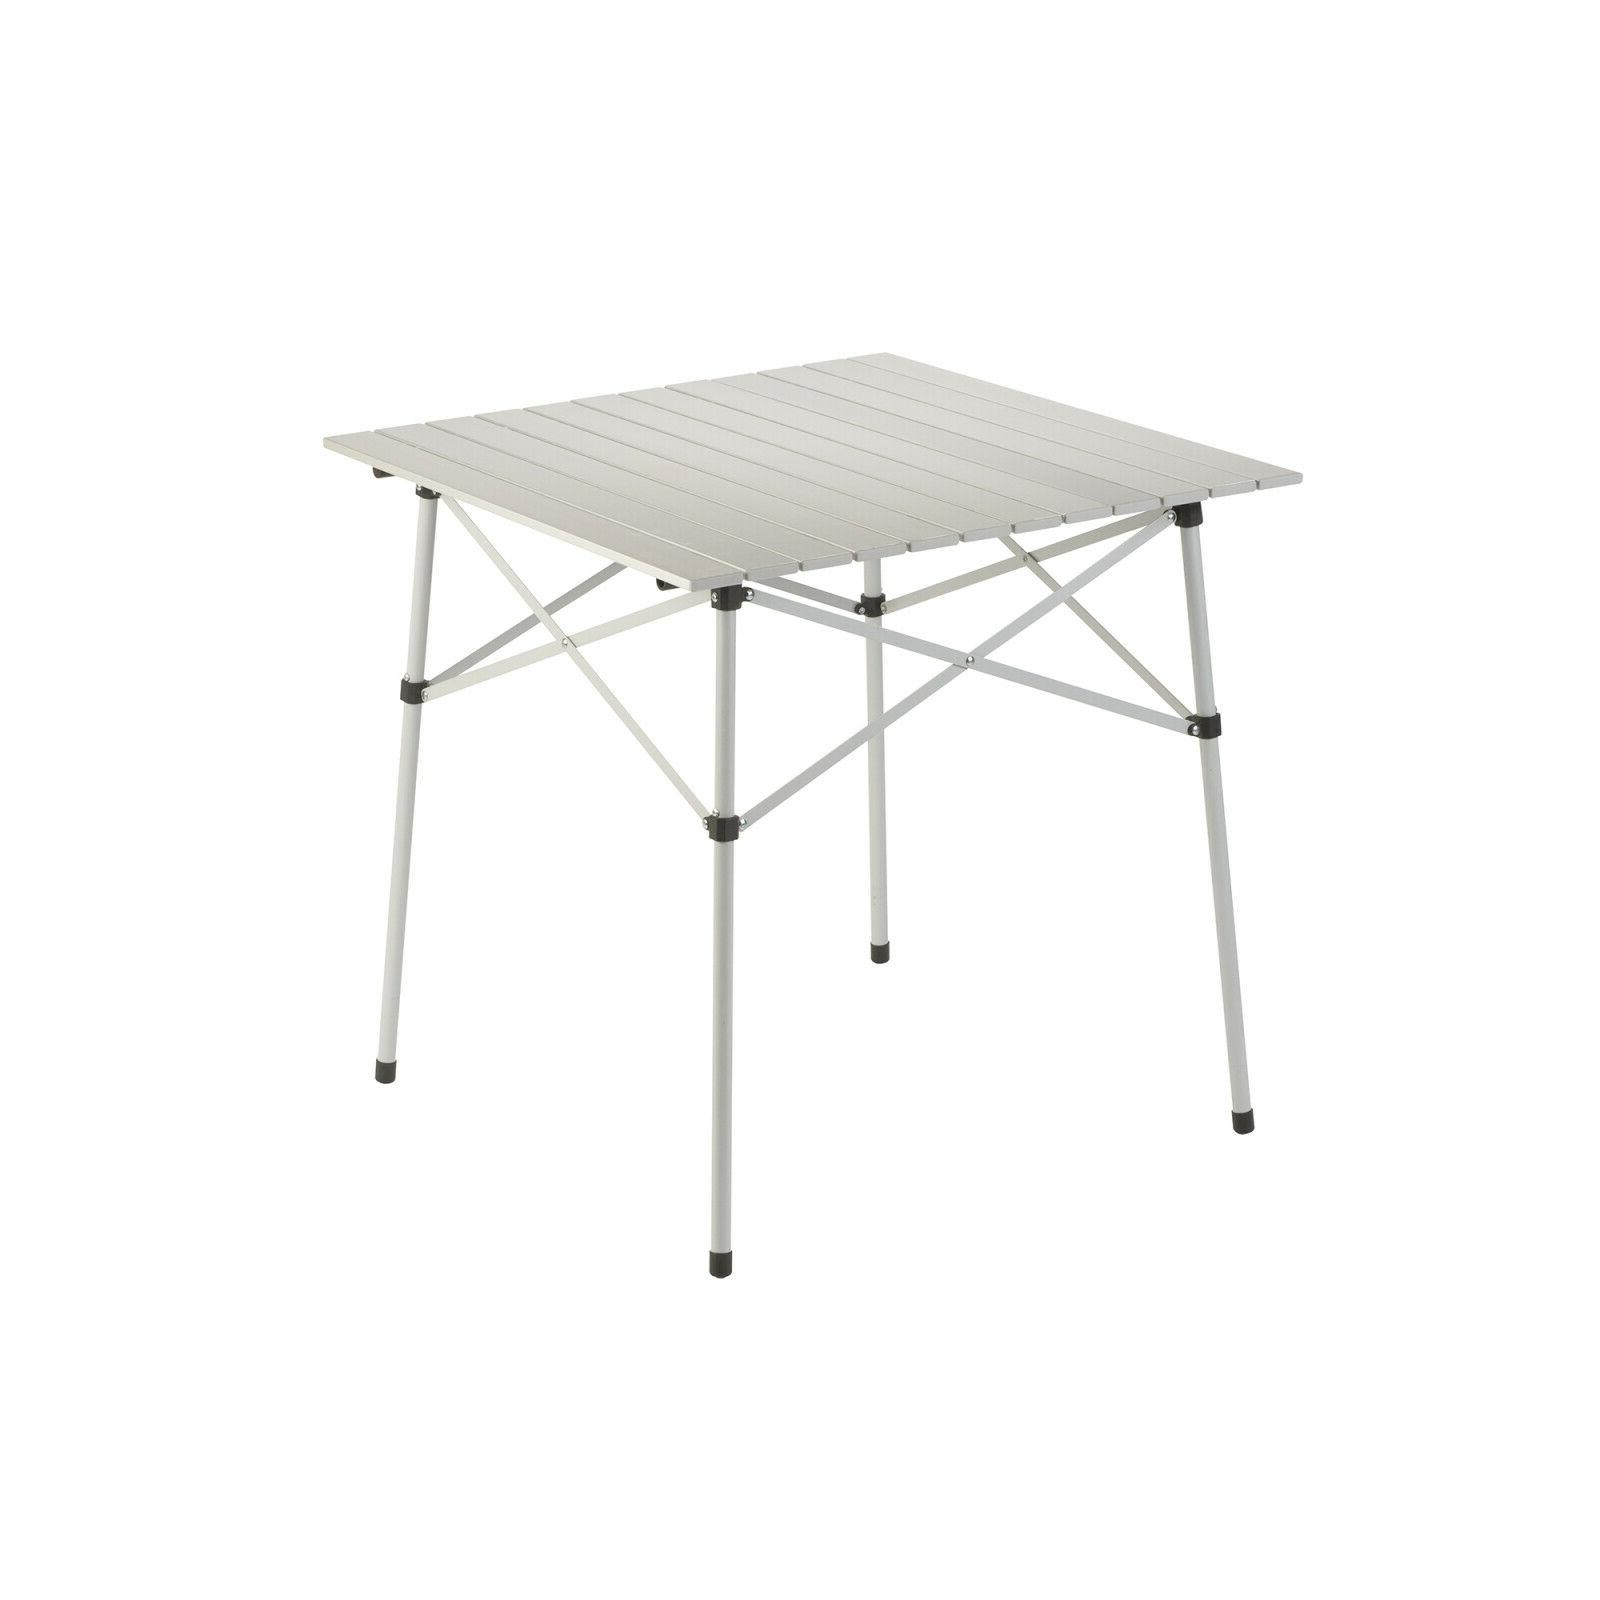 Ultra Compact Outdoor Folding Camping Portable Table w/ Bag